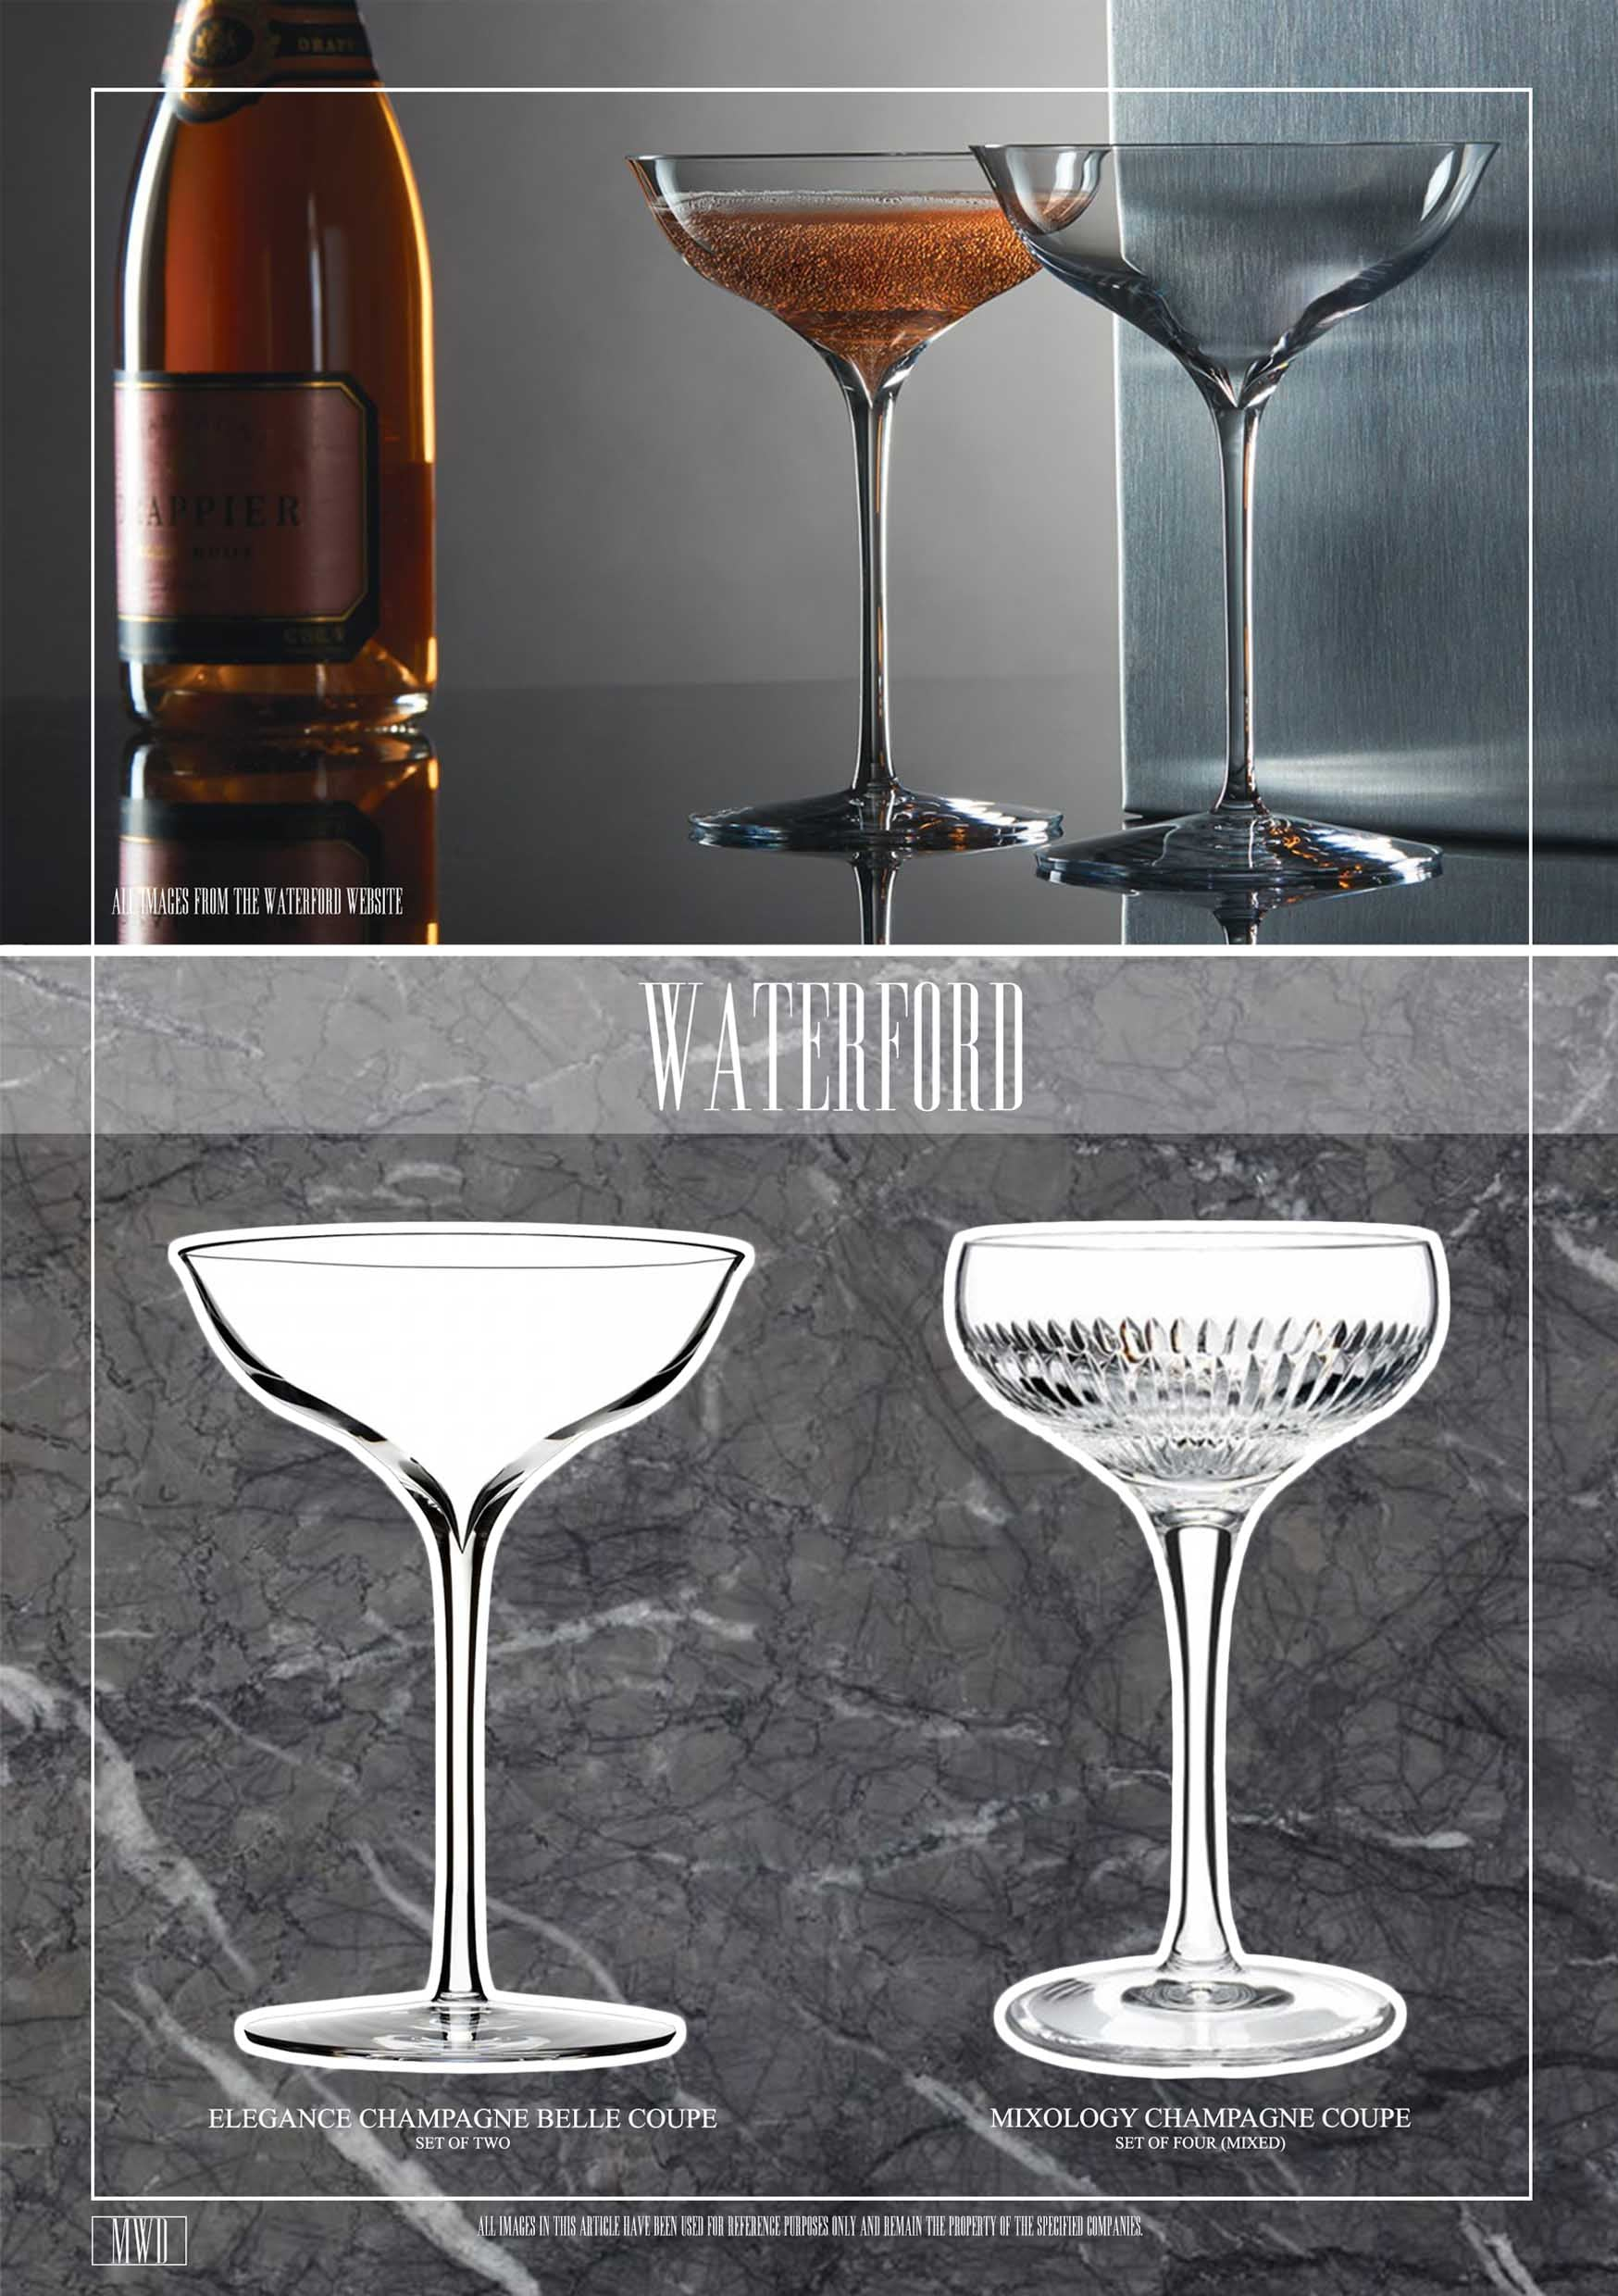 Waterford luxury champagne coupe